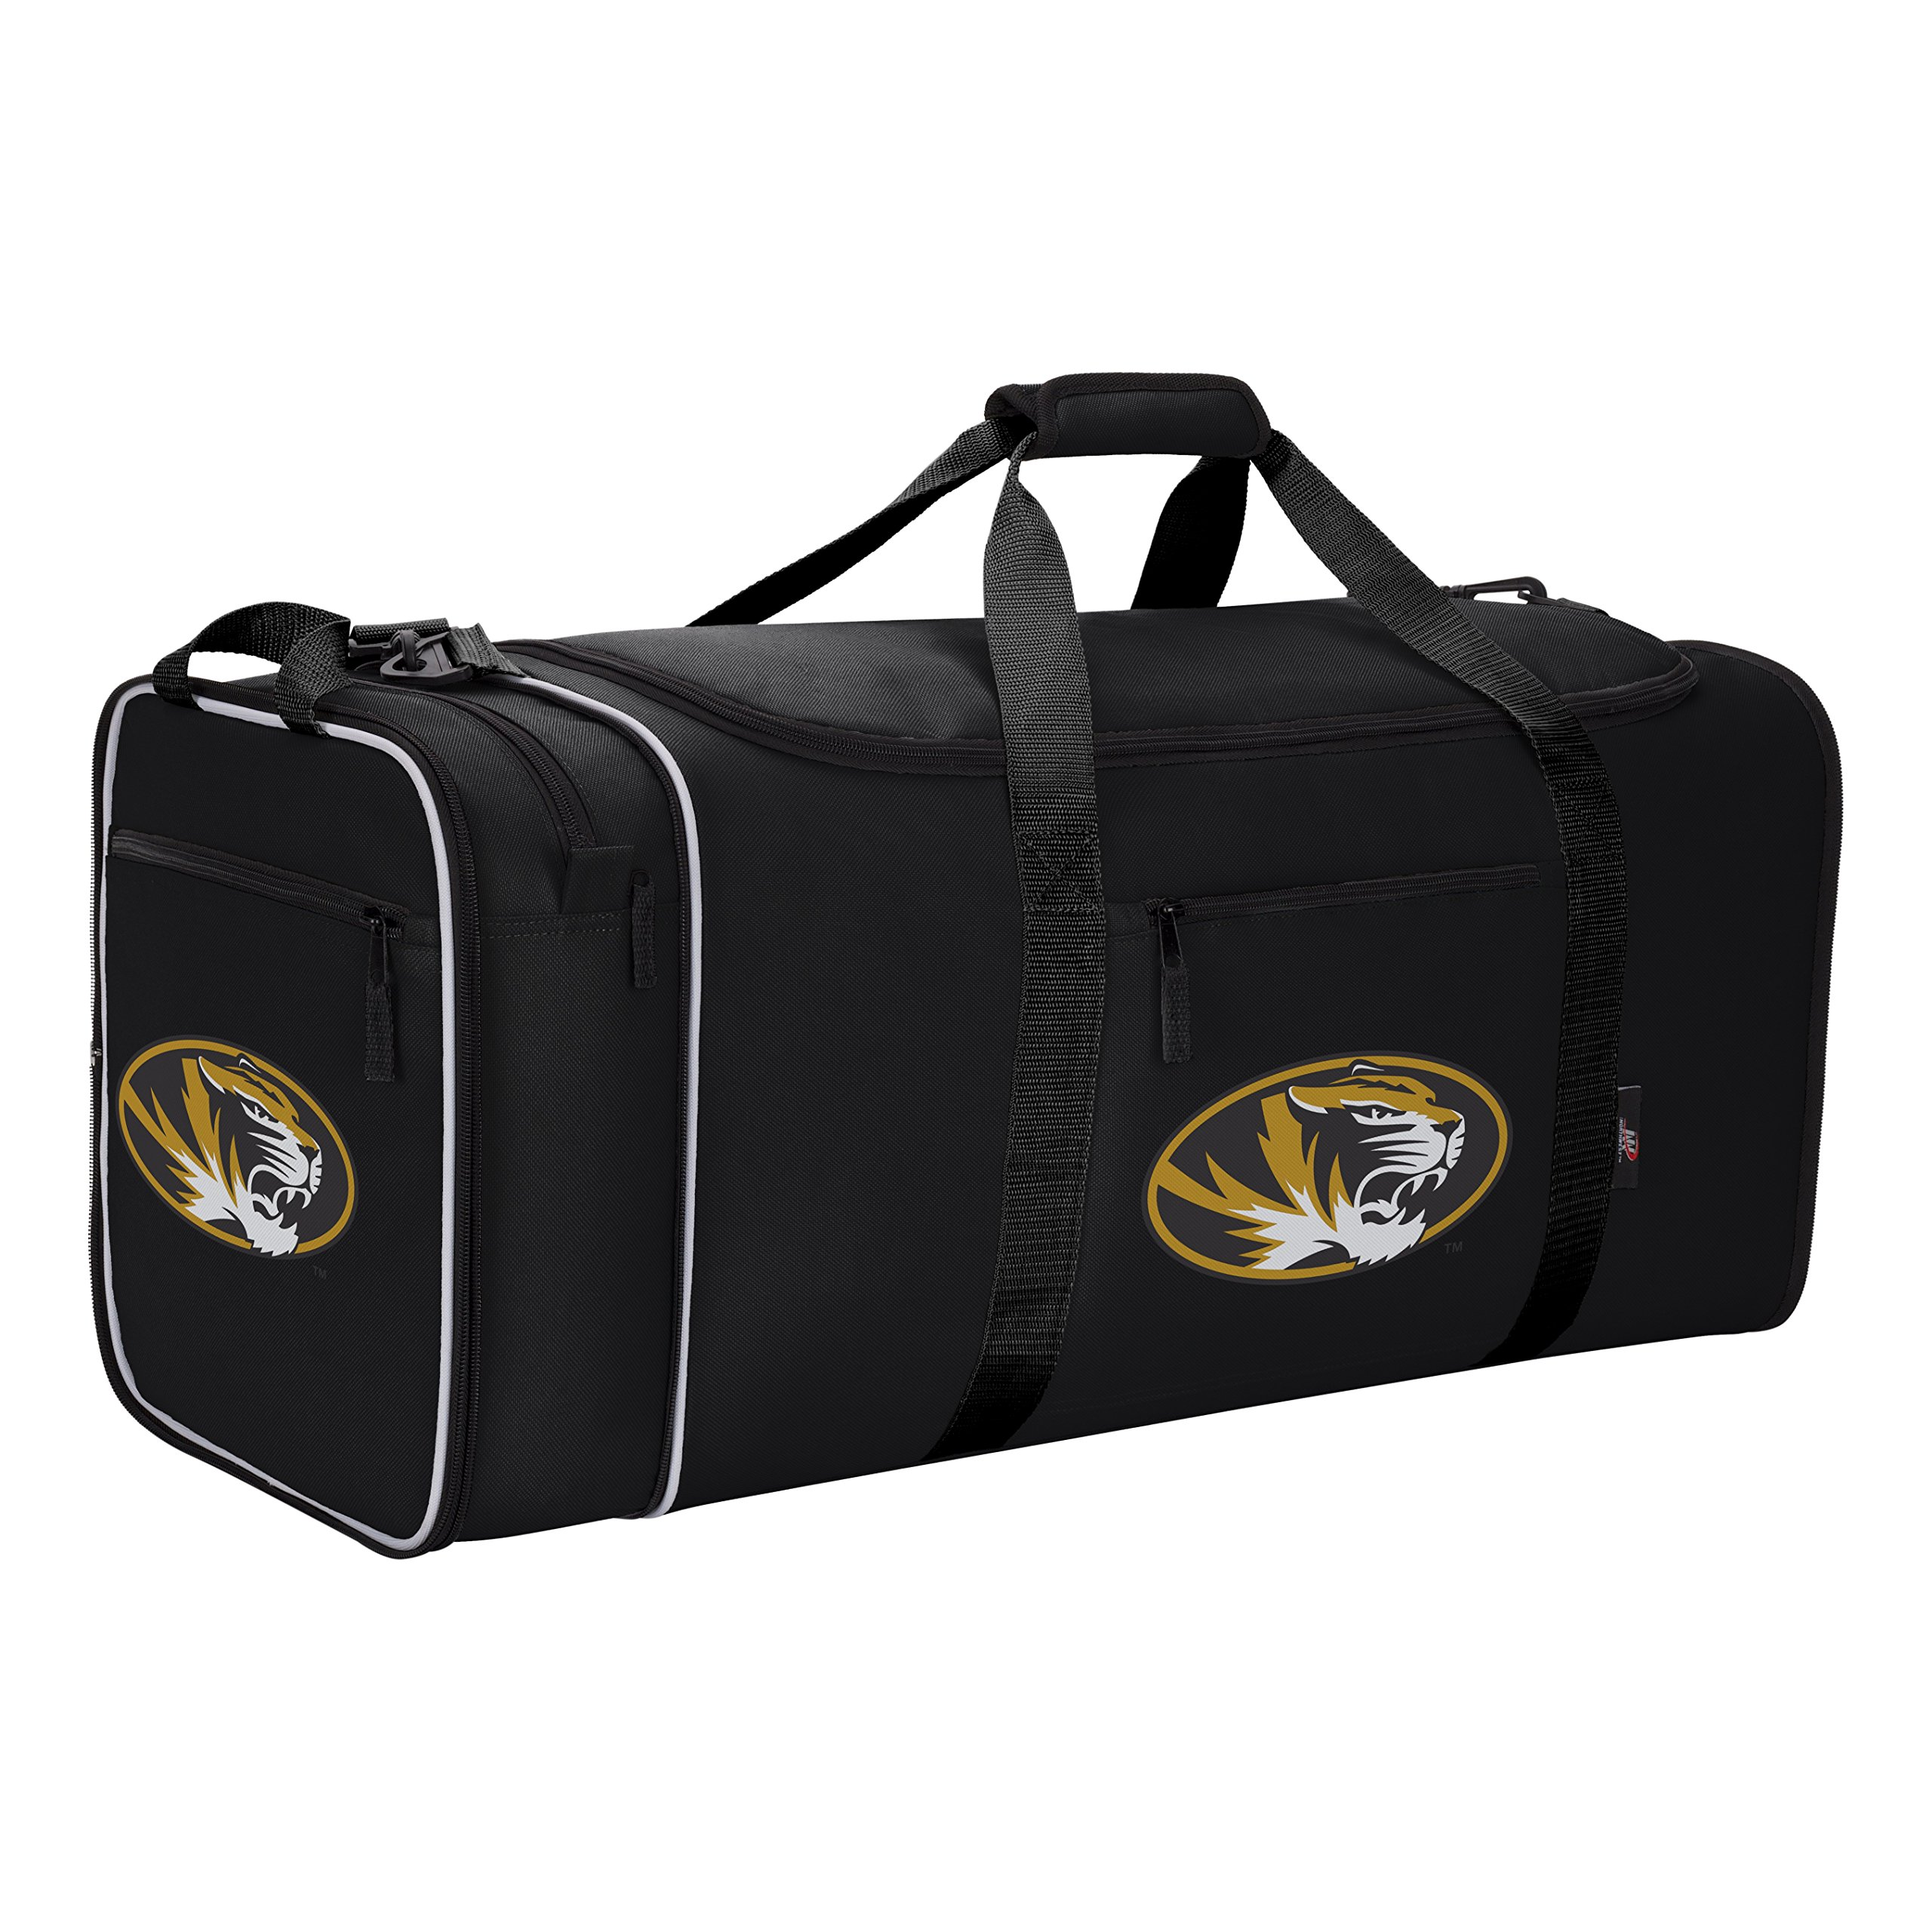 Officially Licensed NCAA Missouri Tigers Steal Duffel Bag by The Northwest Company (Image #3)